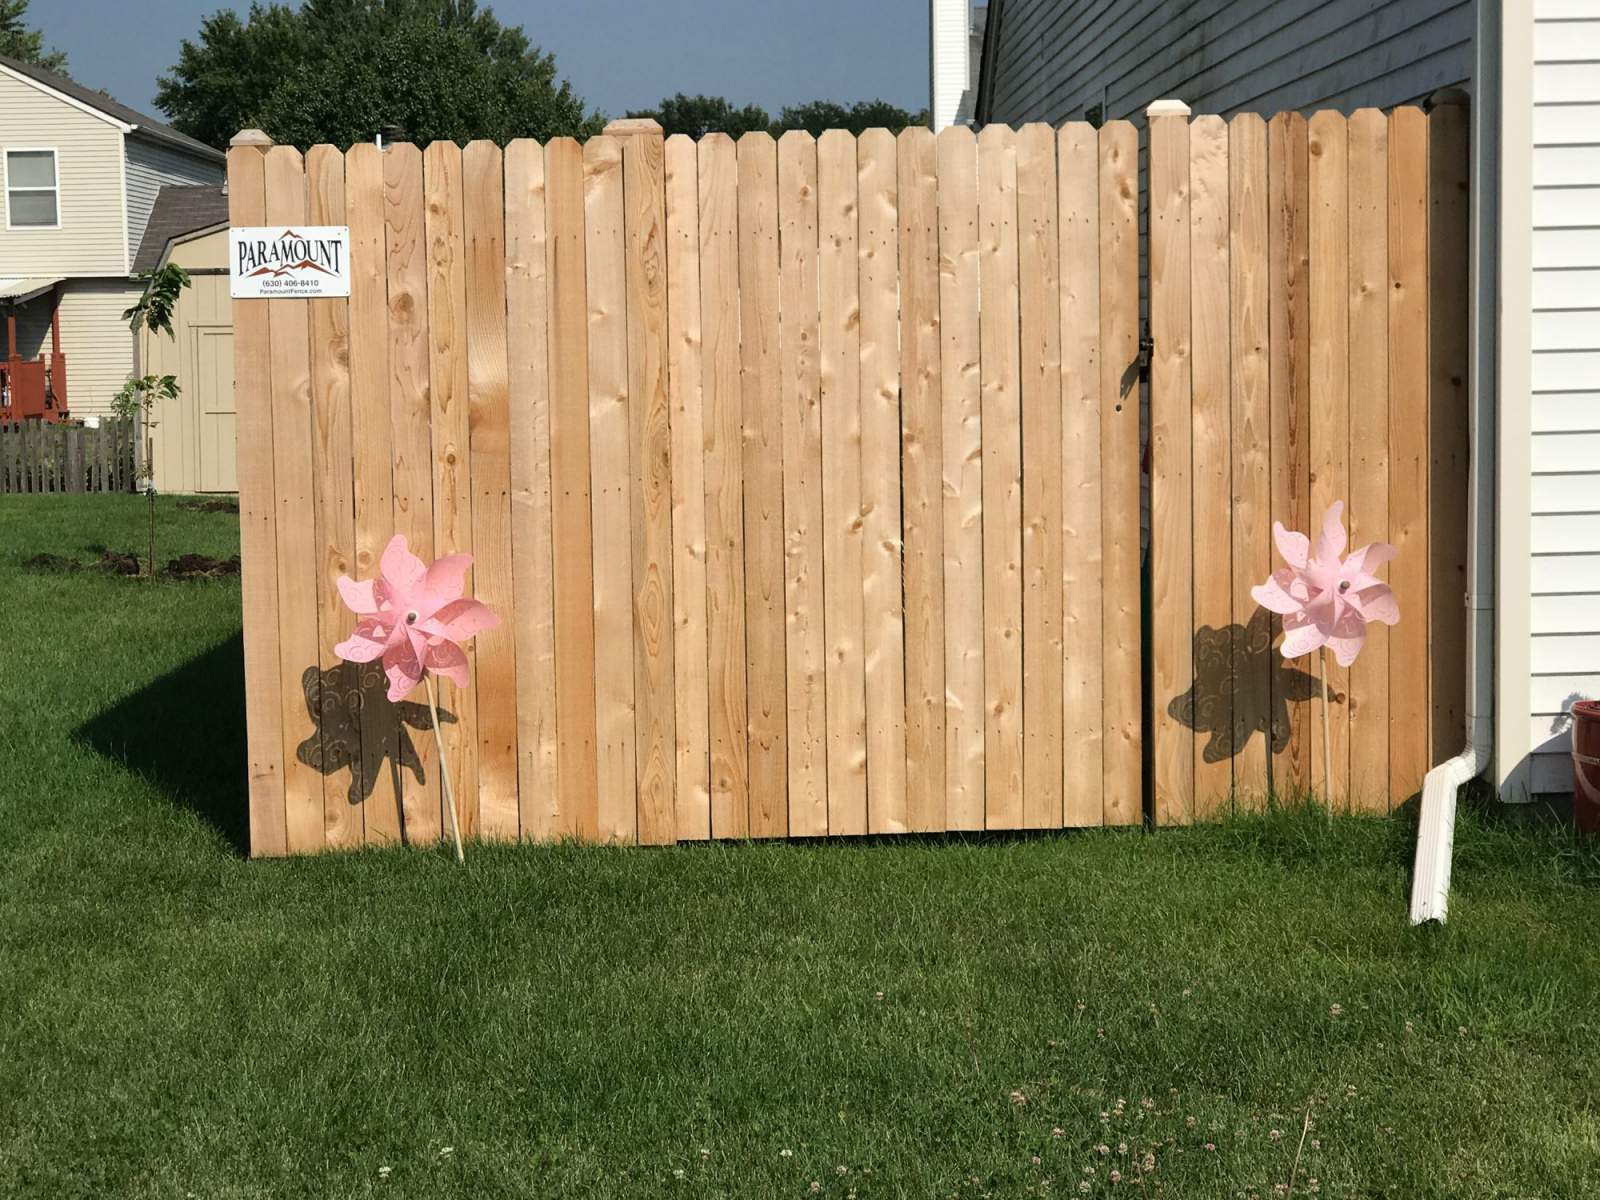 Types Of Fence Batavia Il Paramount Fence pertaining to 11 Genius Ideas How to Make Types Of Wood Fences For Backyard